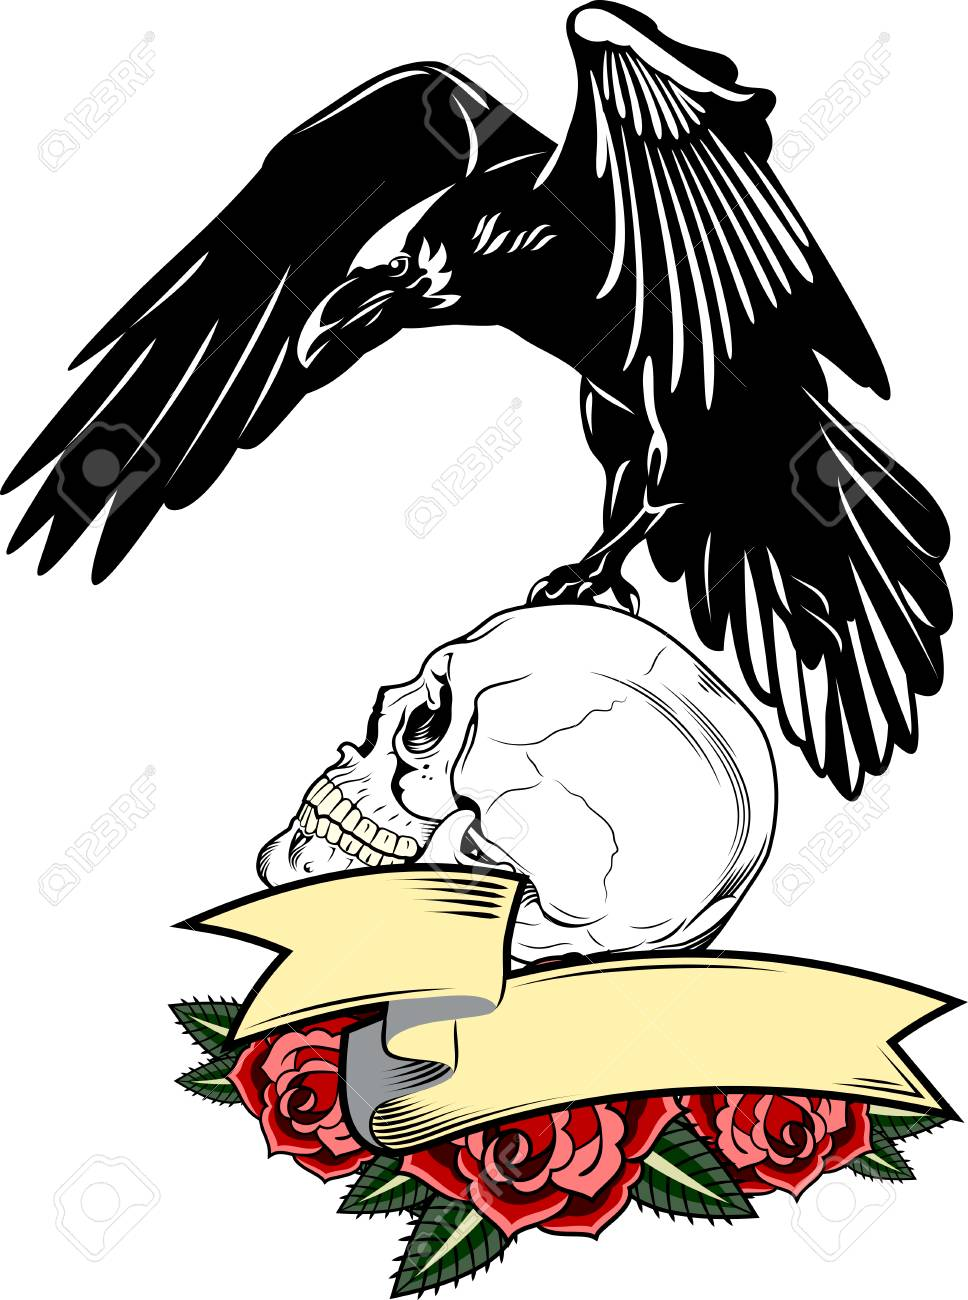 968x1300 Portrait Of A Raven Flying With A Banner, Roses And A Skull